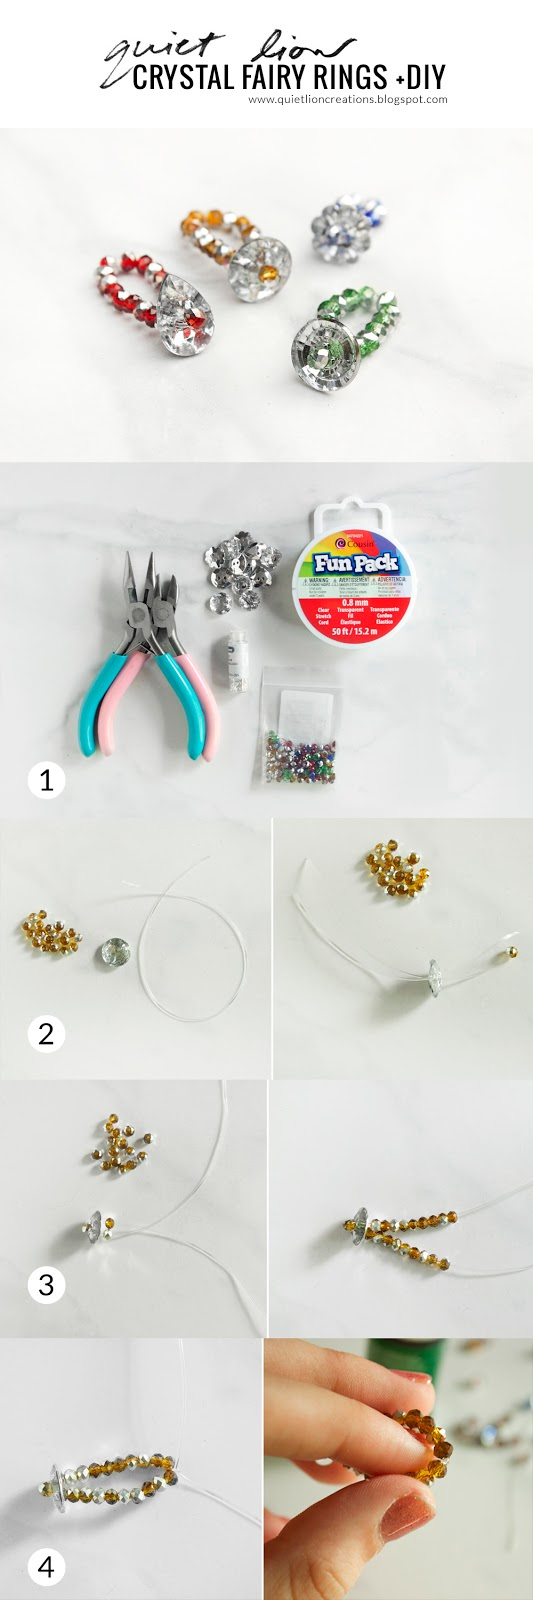 crystal fairy rings +diy - Quiet Lion Creations